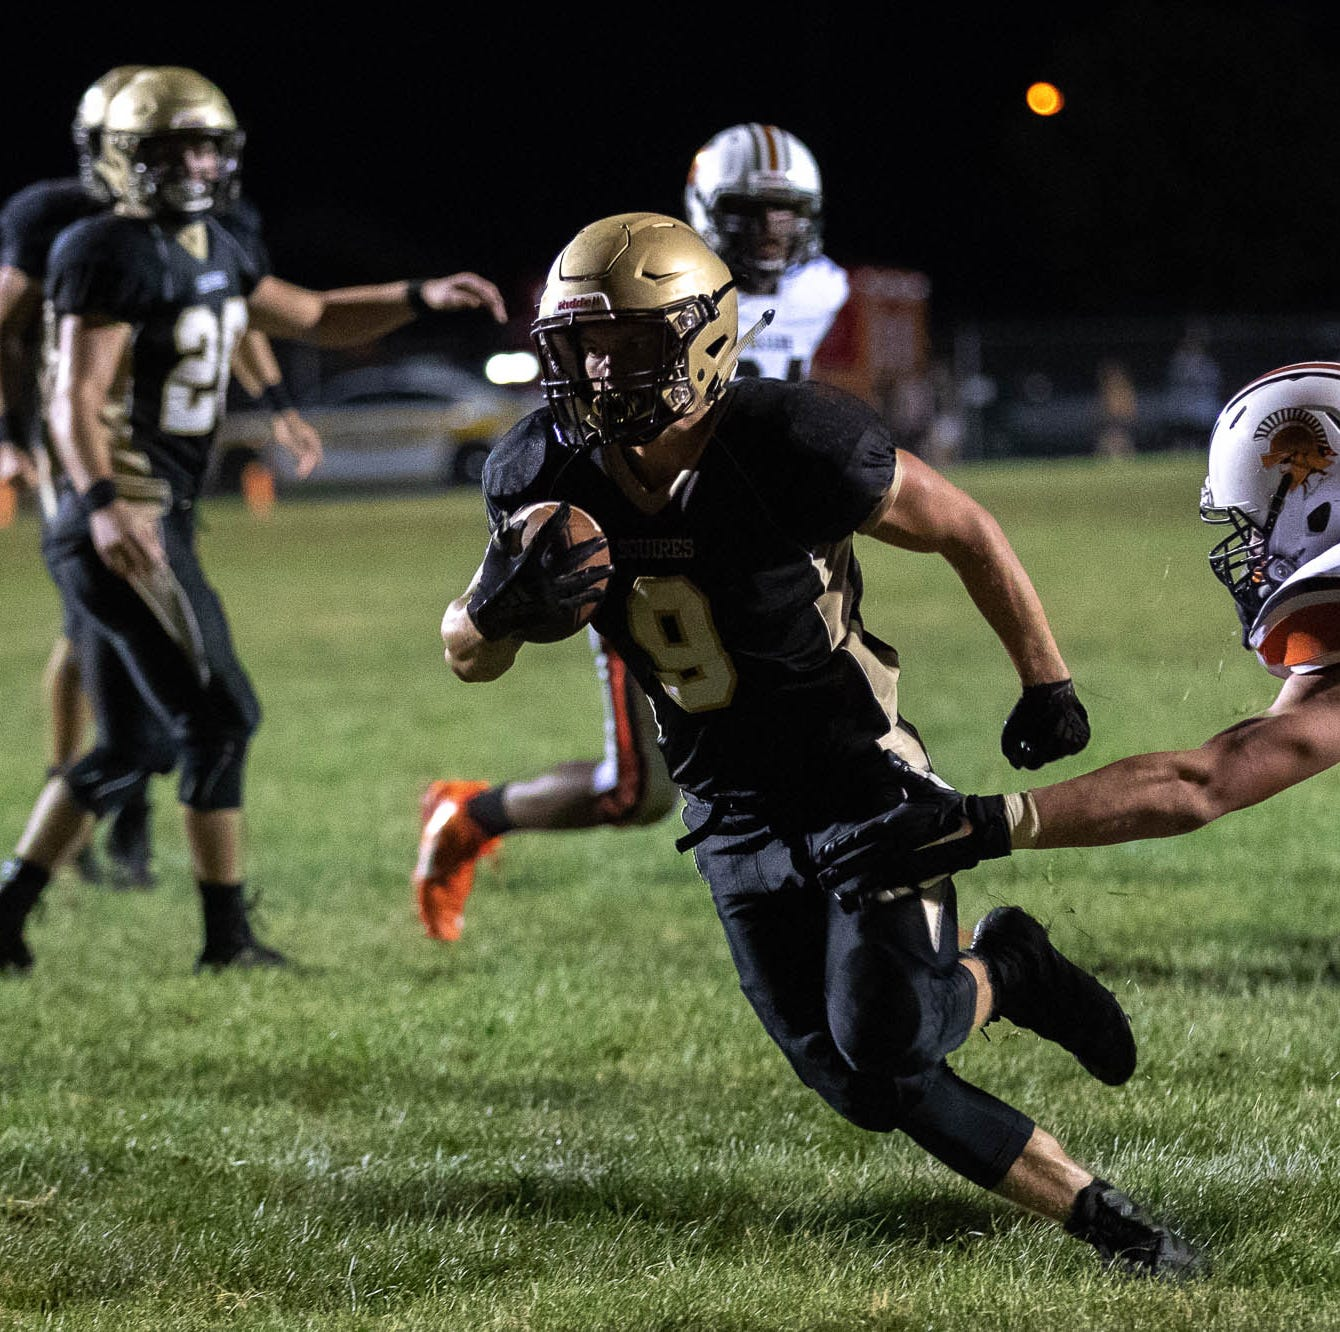 Delone Catholic boasts highest scoring offense in state behind trio of rushers